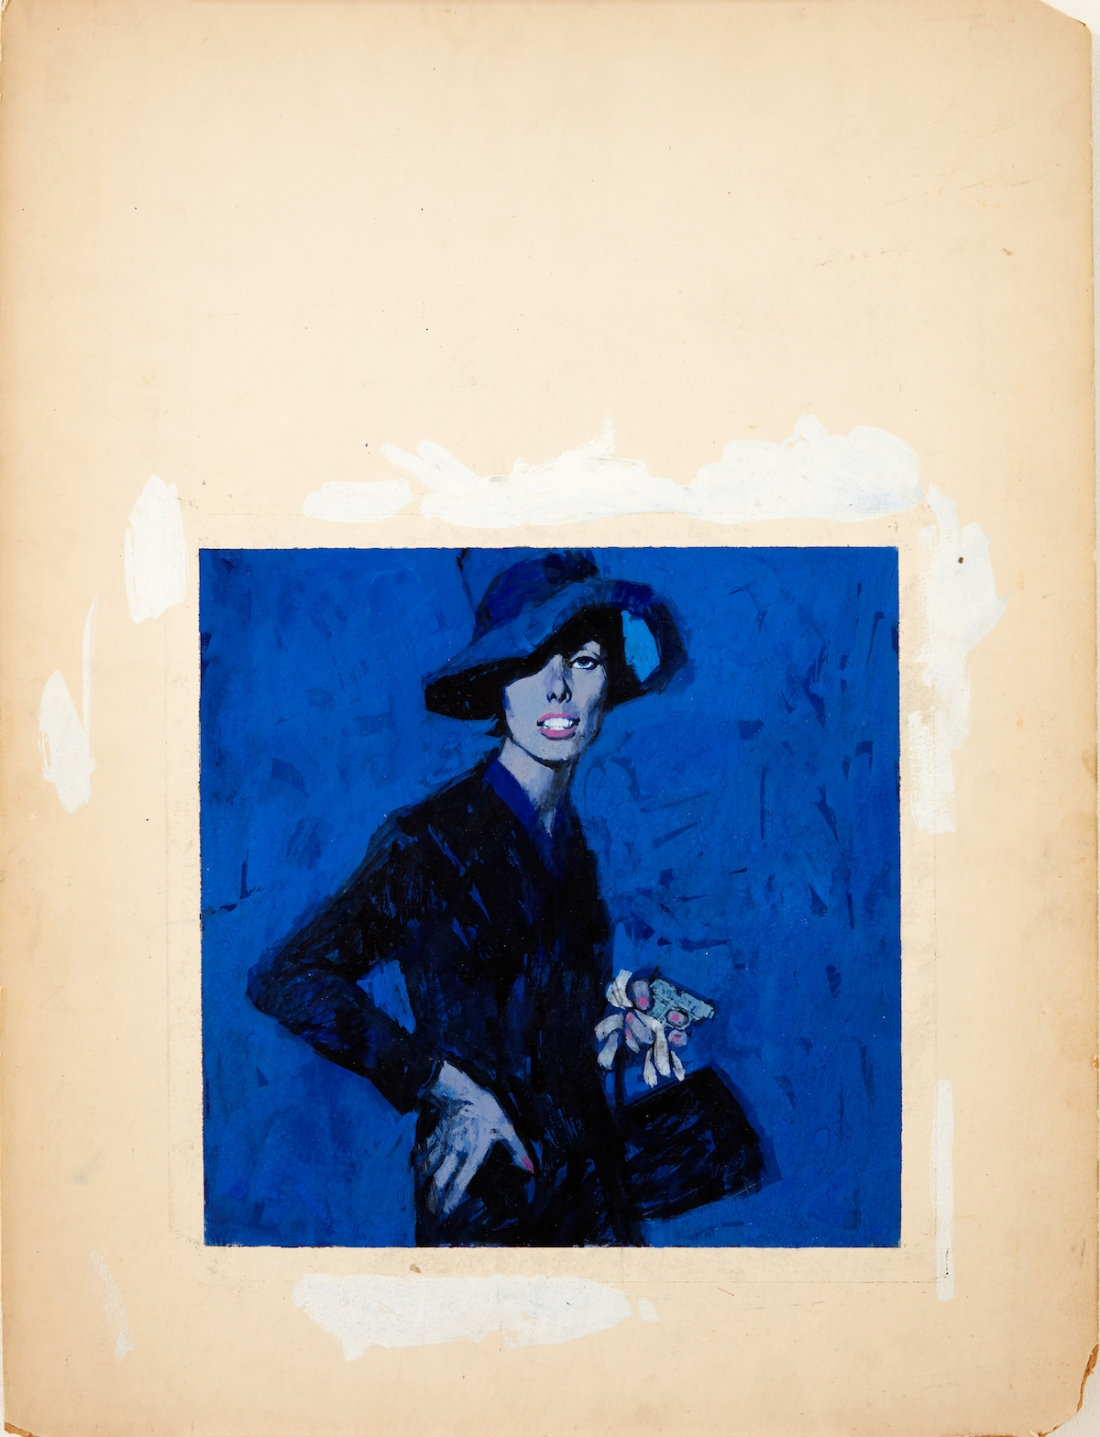 Renato Fratini, Lady in Blue, c 1960s, gouache on board, copyright Lever Gallery